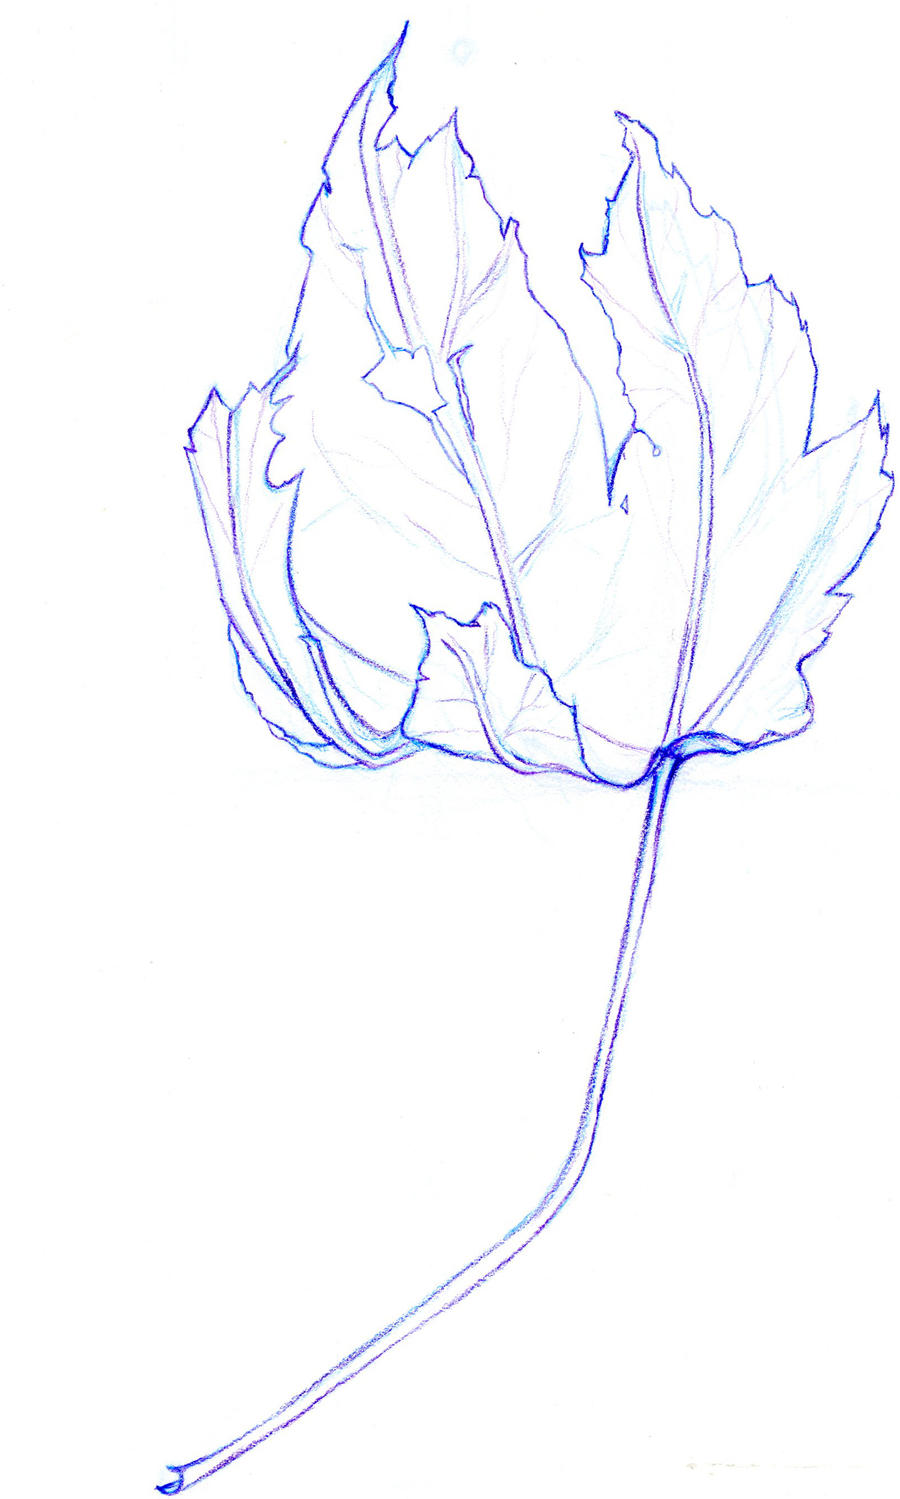 Contour Line Drawing Leaf : Contour line leaf by alexwhlr on deviantart